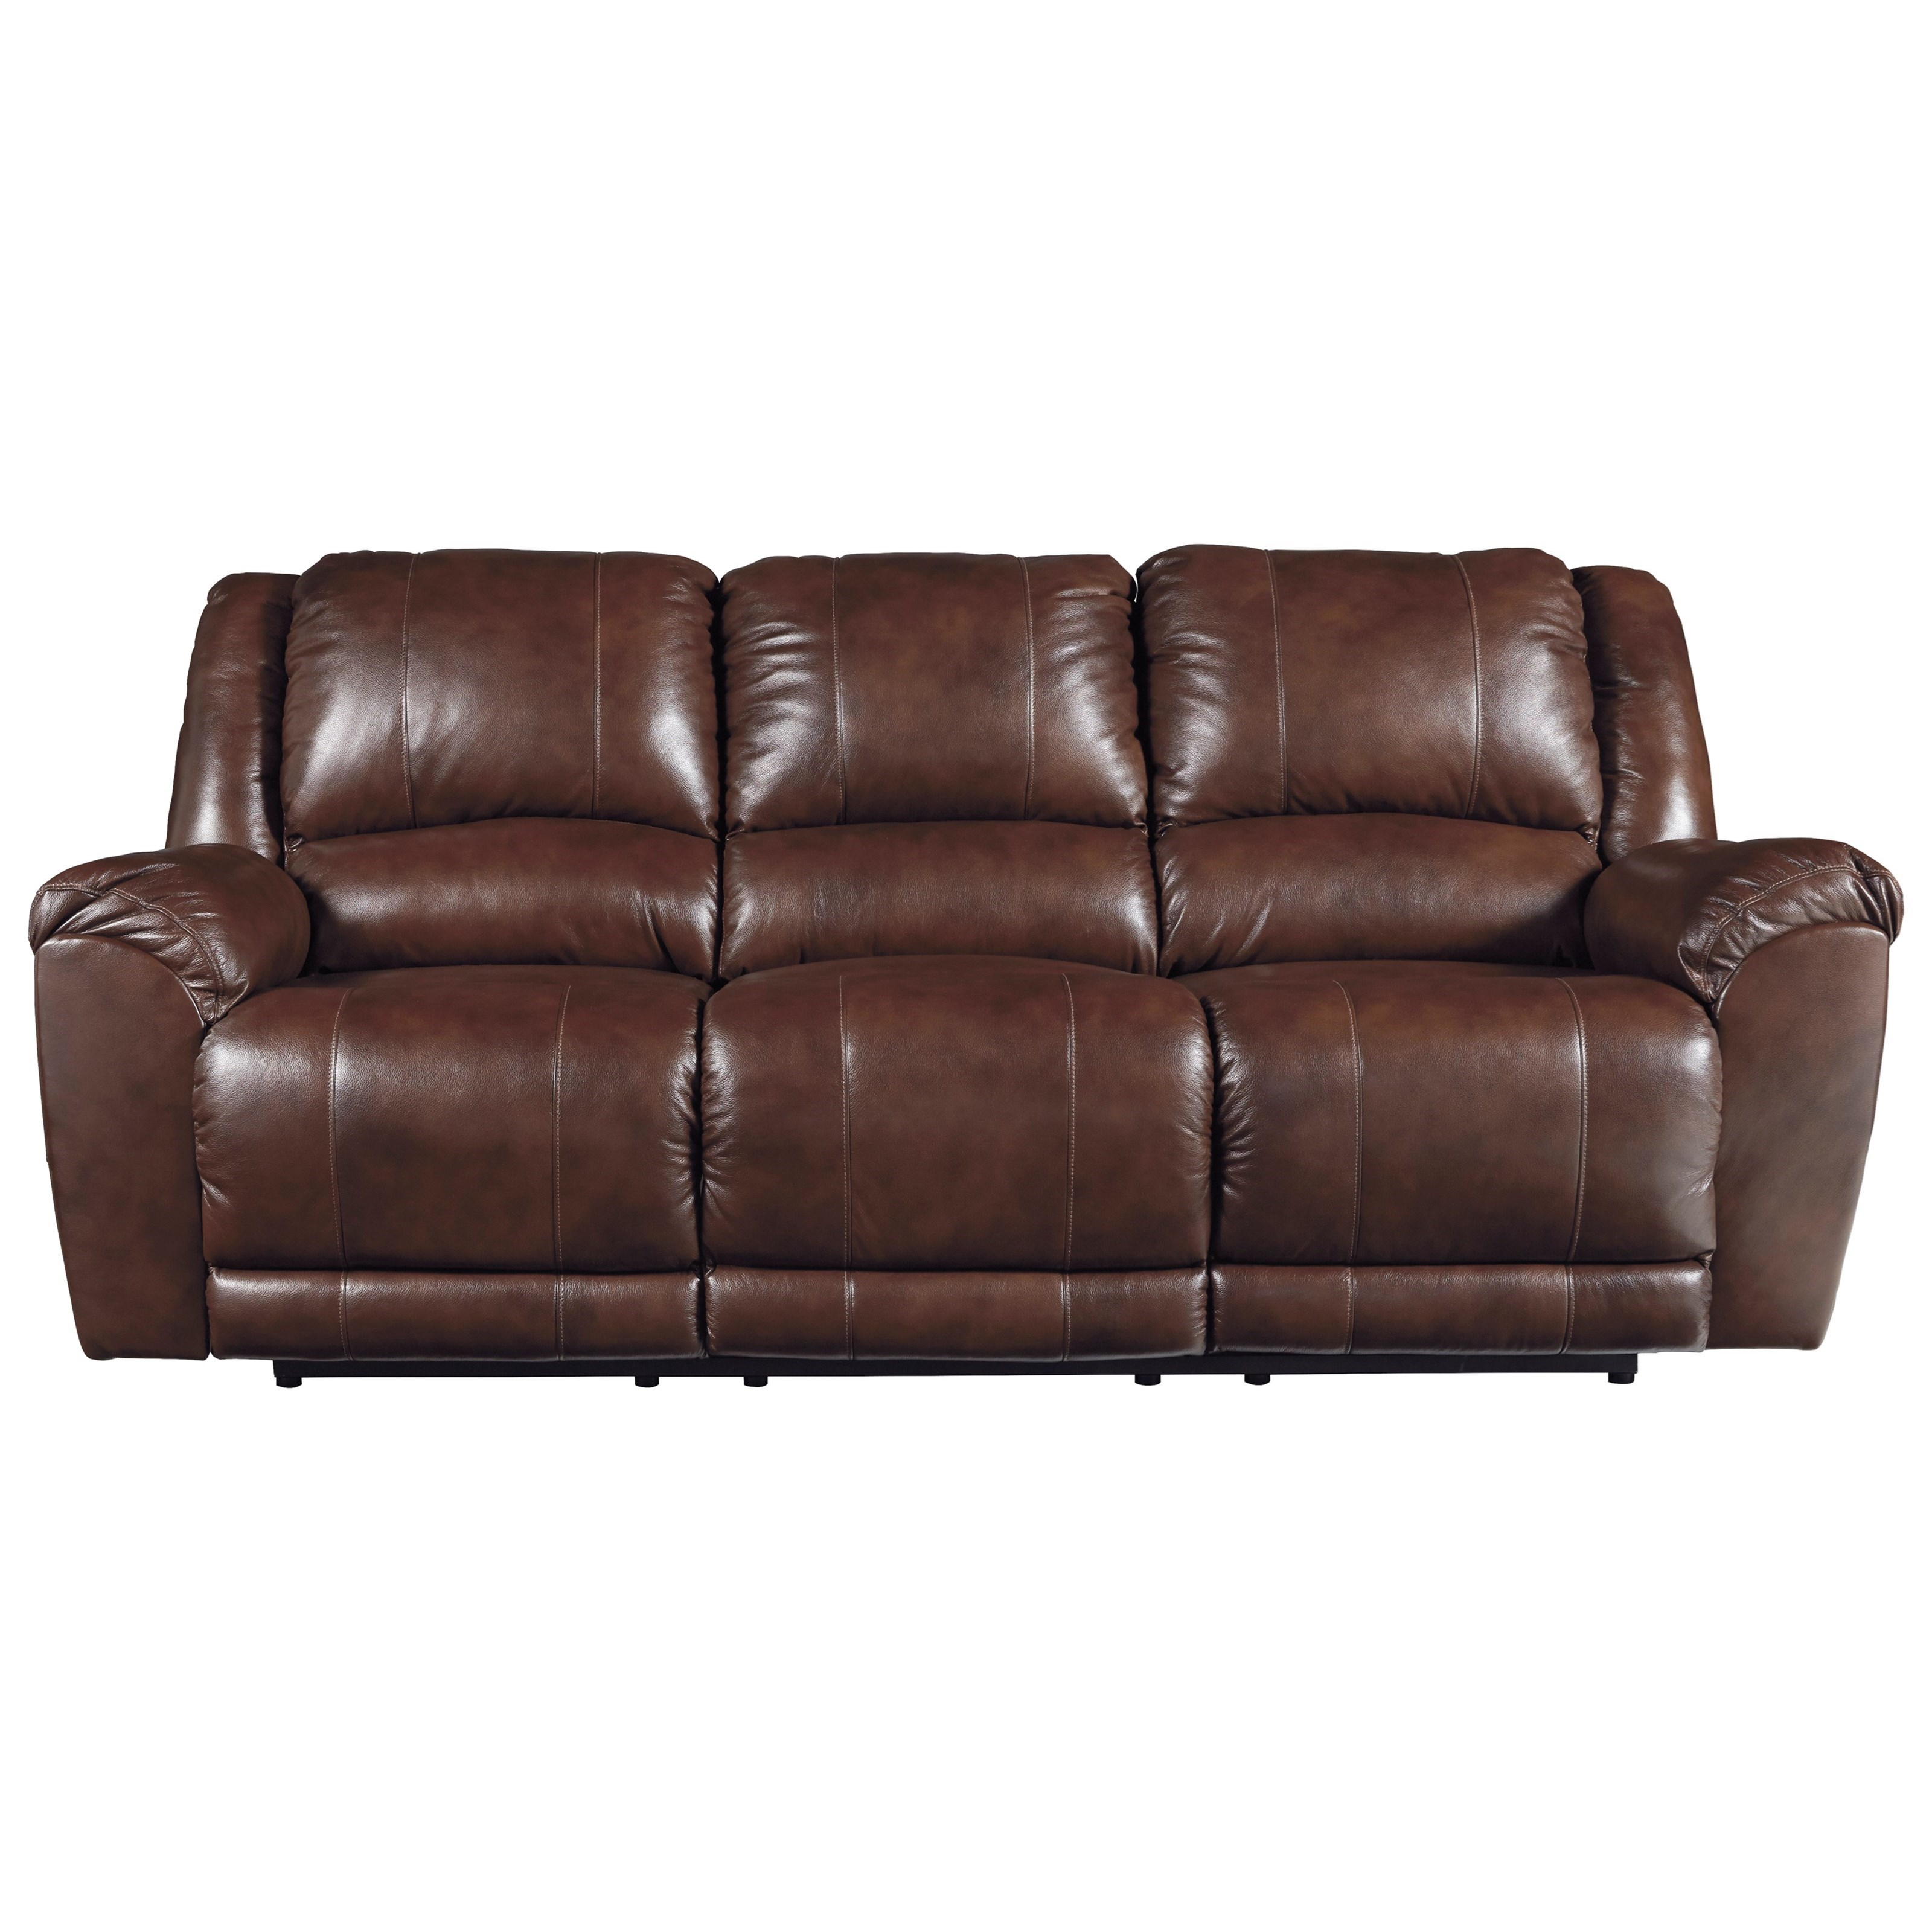 Signature Design by Ashley Persiphone Reclining Power Sofa - Item Number: 6070287